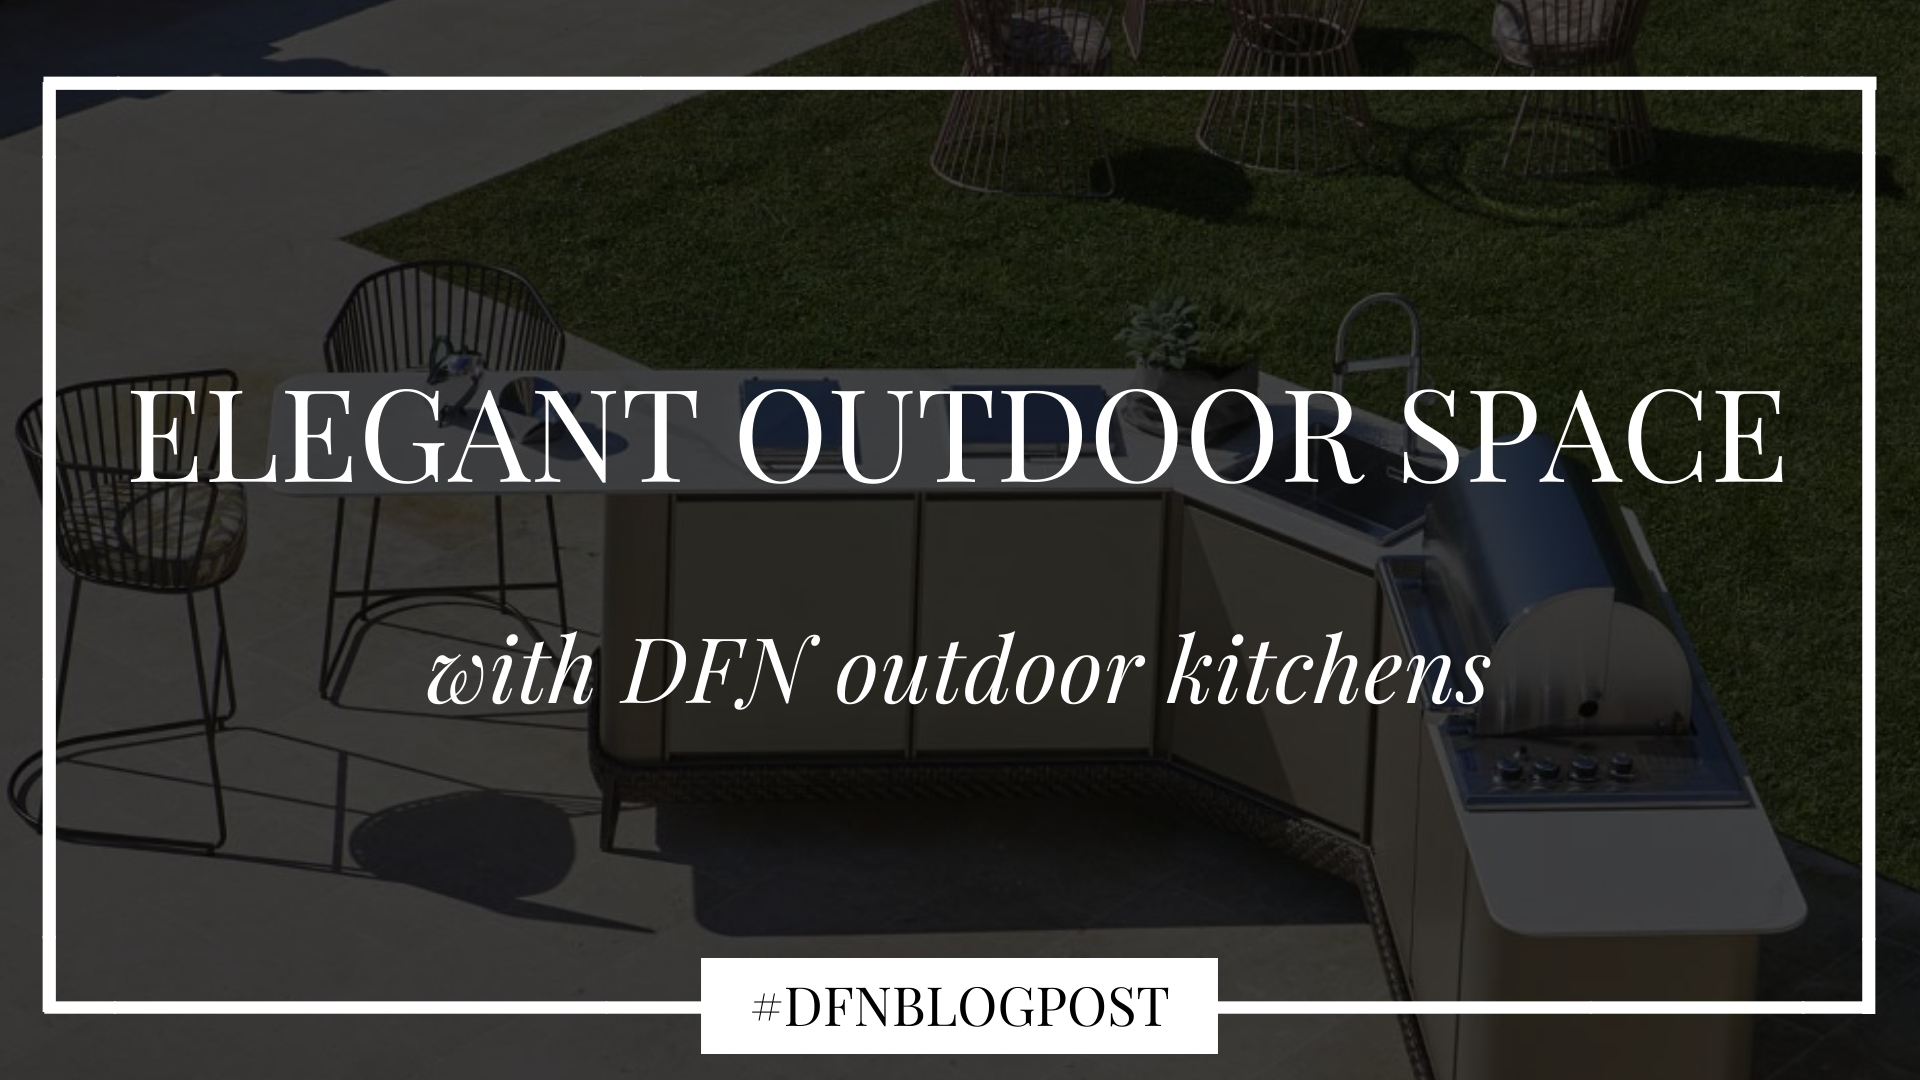 Create an elegant outdoor space with DFN outdoor kitchens 1